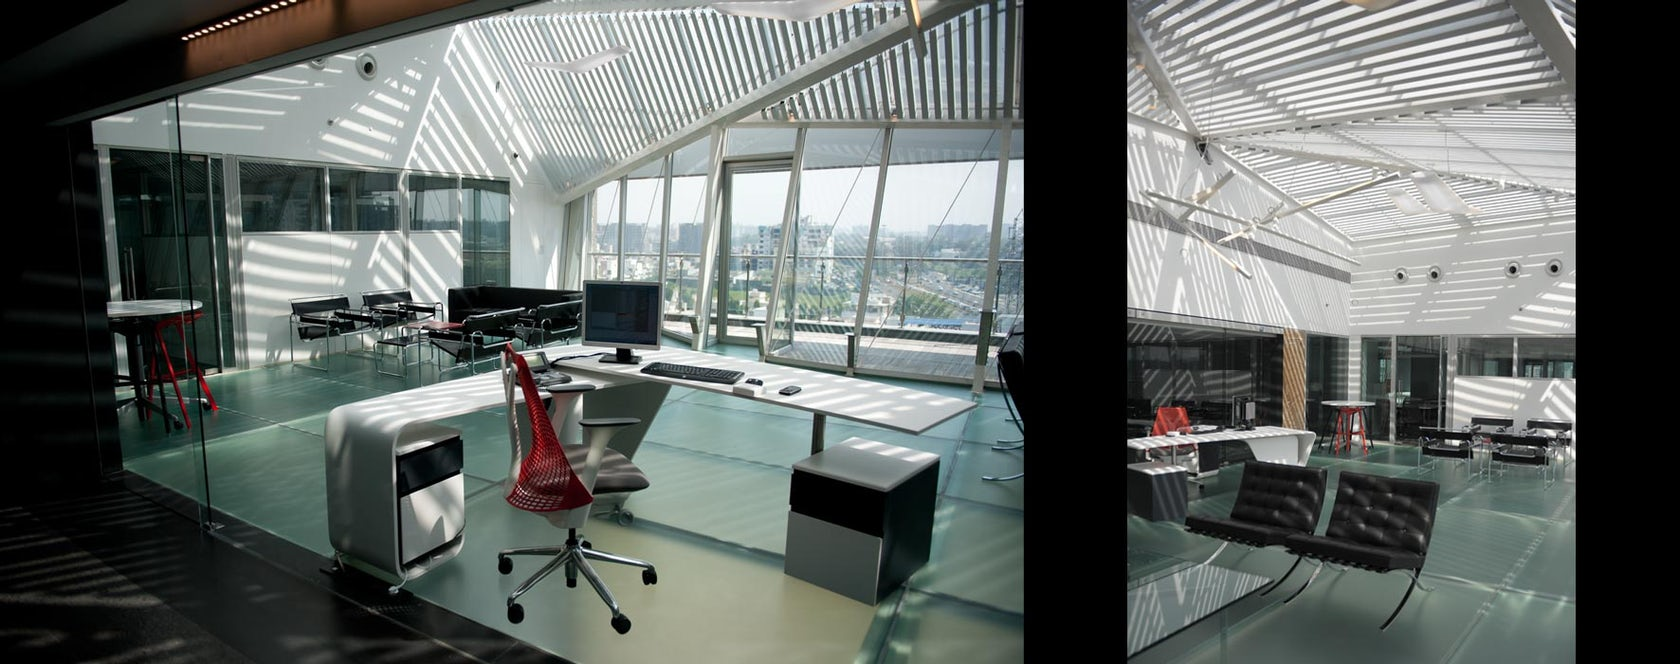 Floatspace office extension redesign architizer for Redesign office space